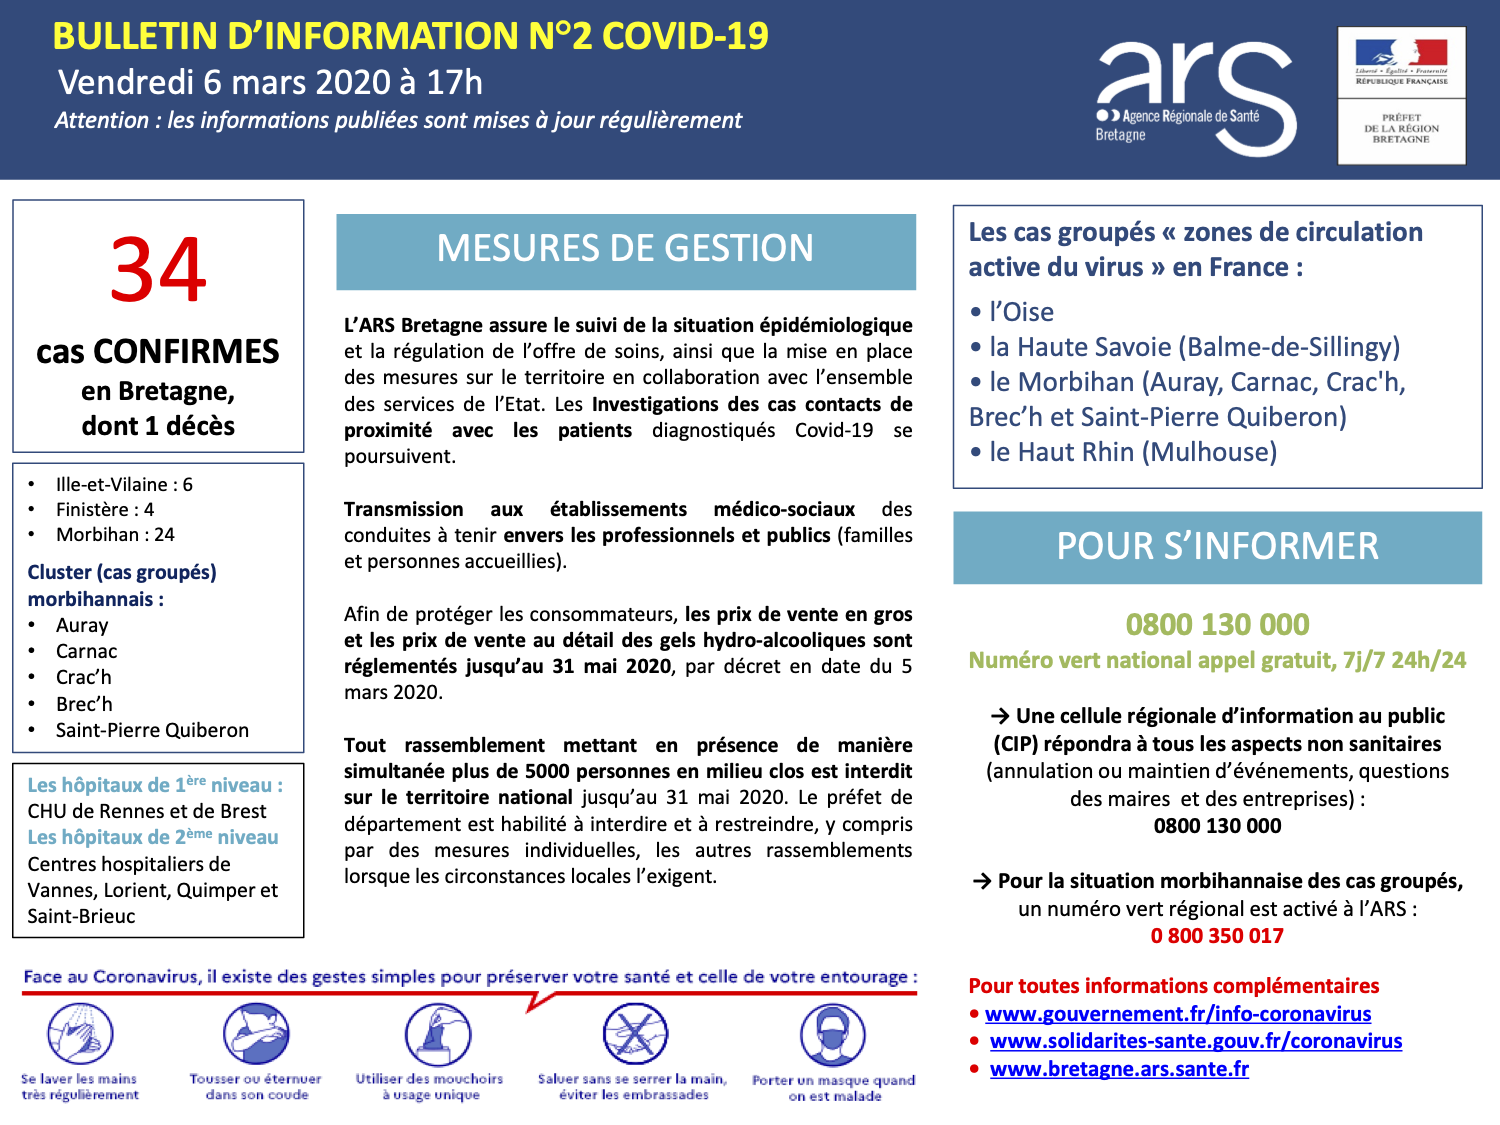 INFORMATIONS SUR LA GESTION DU VIRUS COVID-19